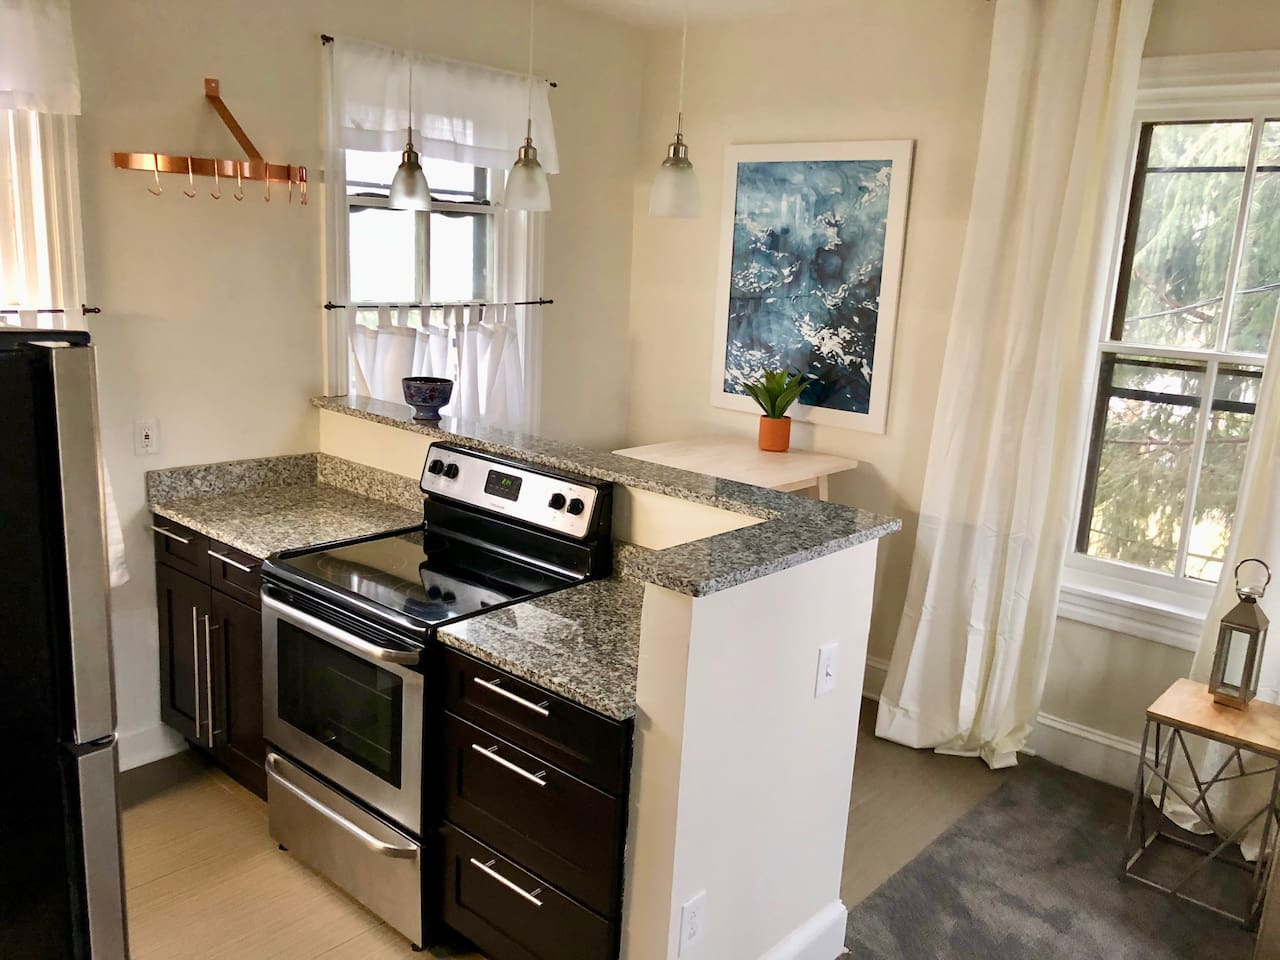 Kitchen Island with Stove and Cooking Space